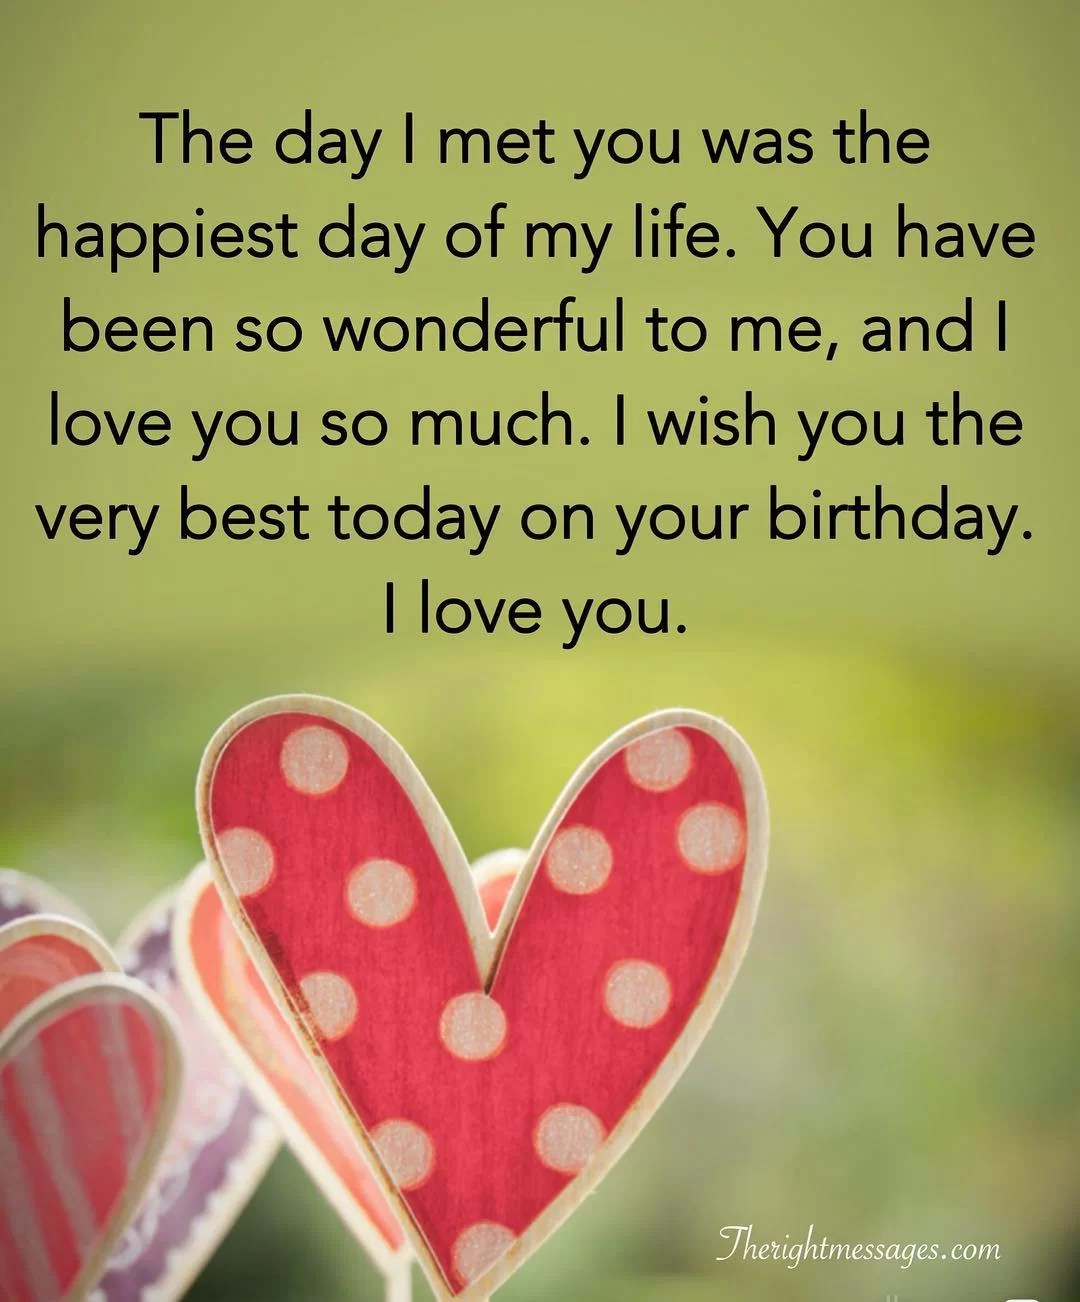 Caption For Boyfriend Birthday : caption, boyfriend, birthday, Short, Romantic, Birthday, Wishes, Boyfriend, Right, Messages